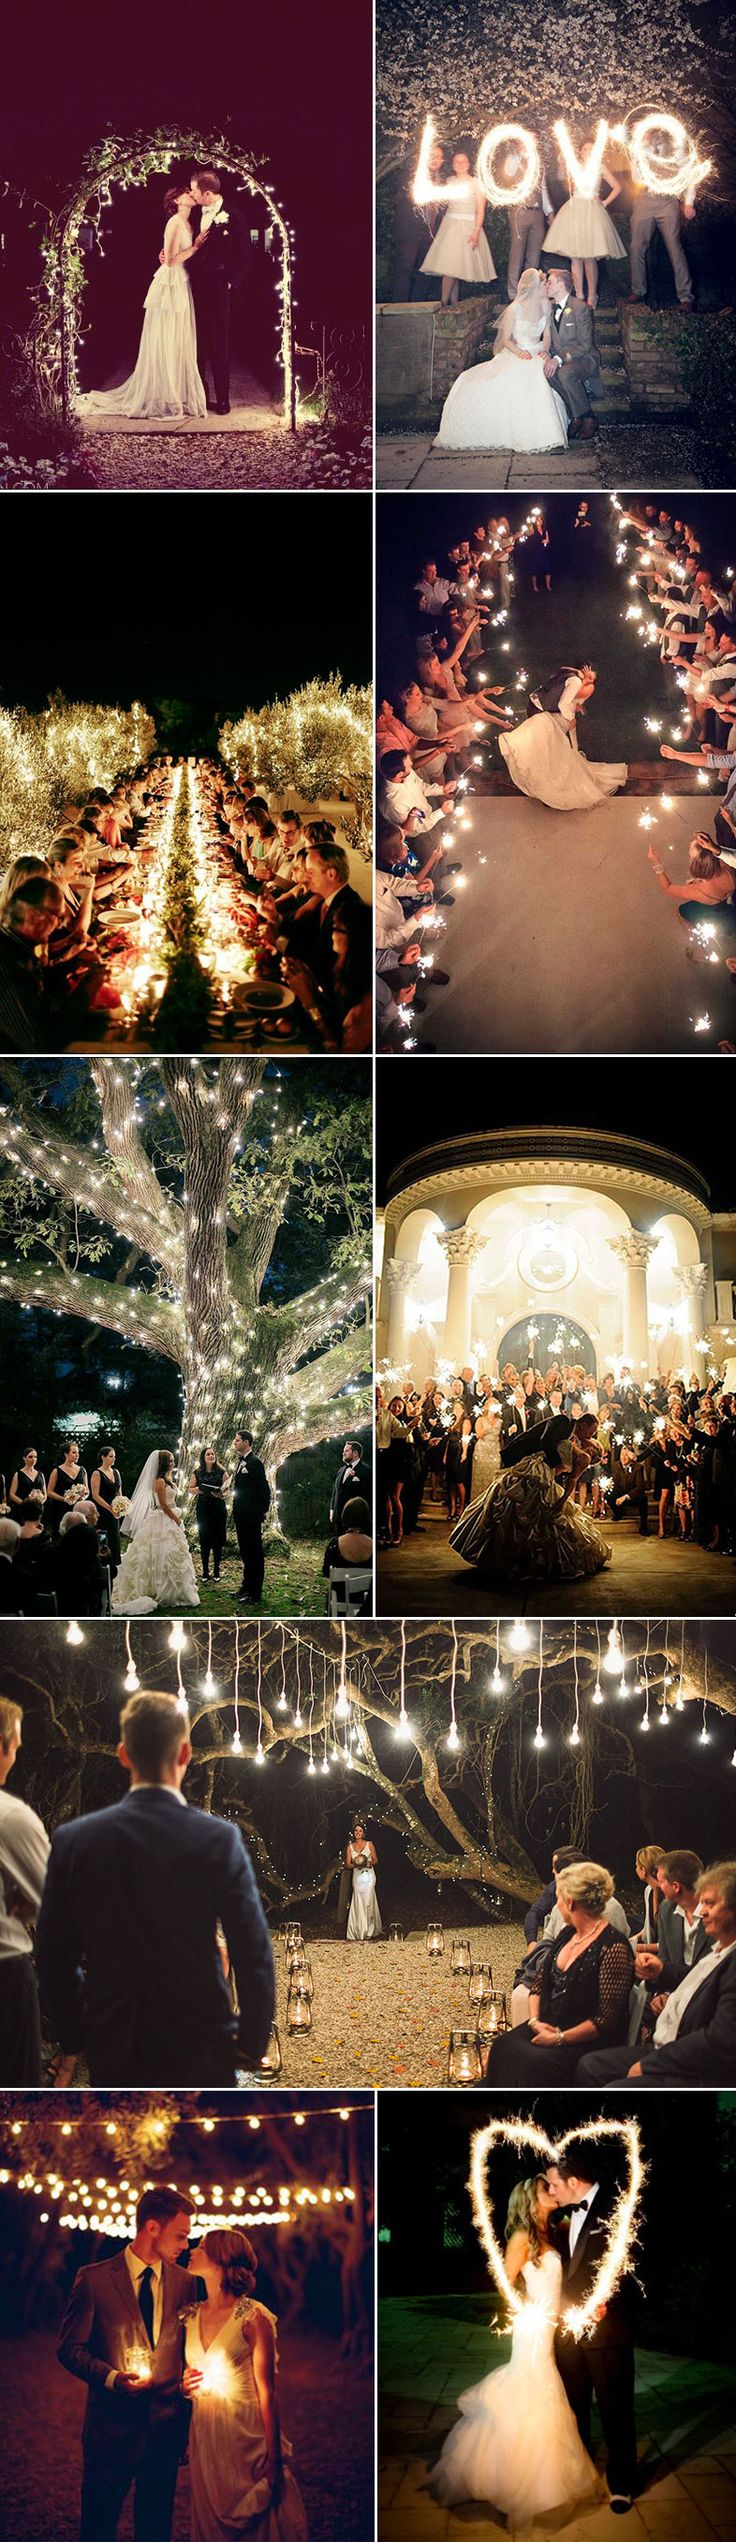 There is something so dramatically romantic about night time weddings. Imagine a night of candlelit conversations, hands full of sparklers, fireworks, bonfires and all the people you love under the moonlit sky